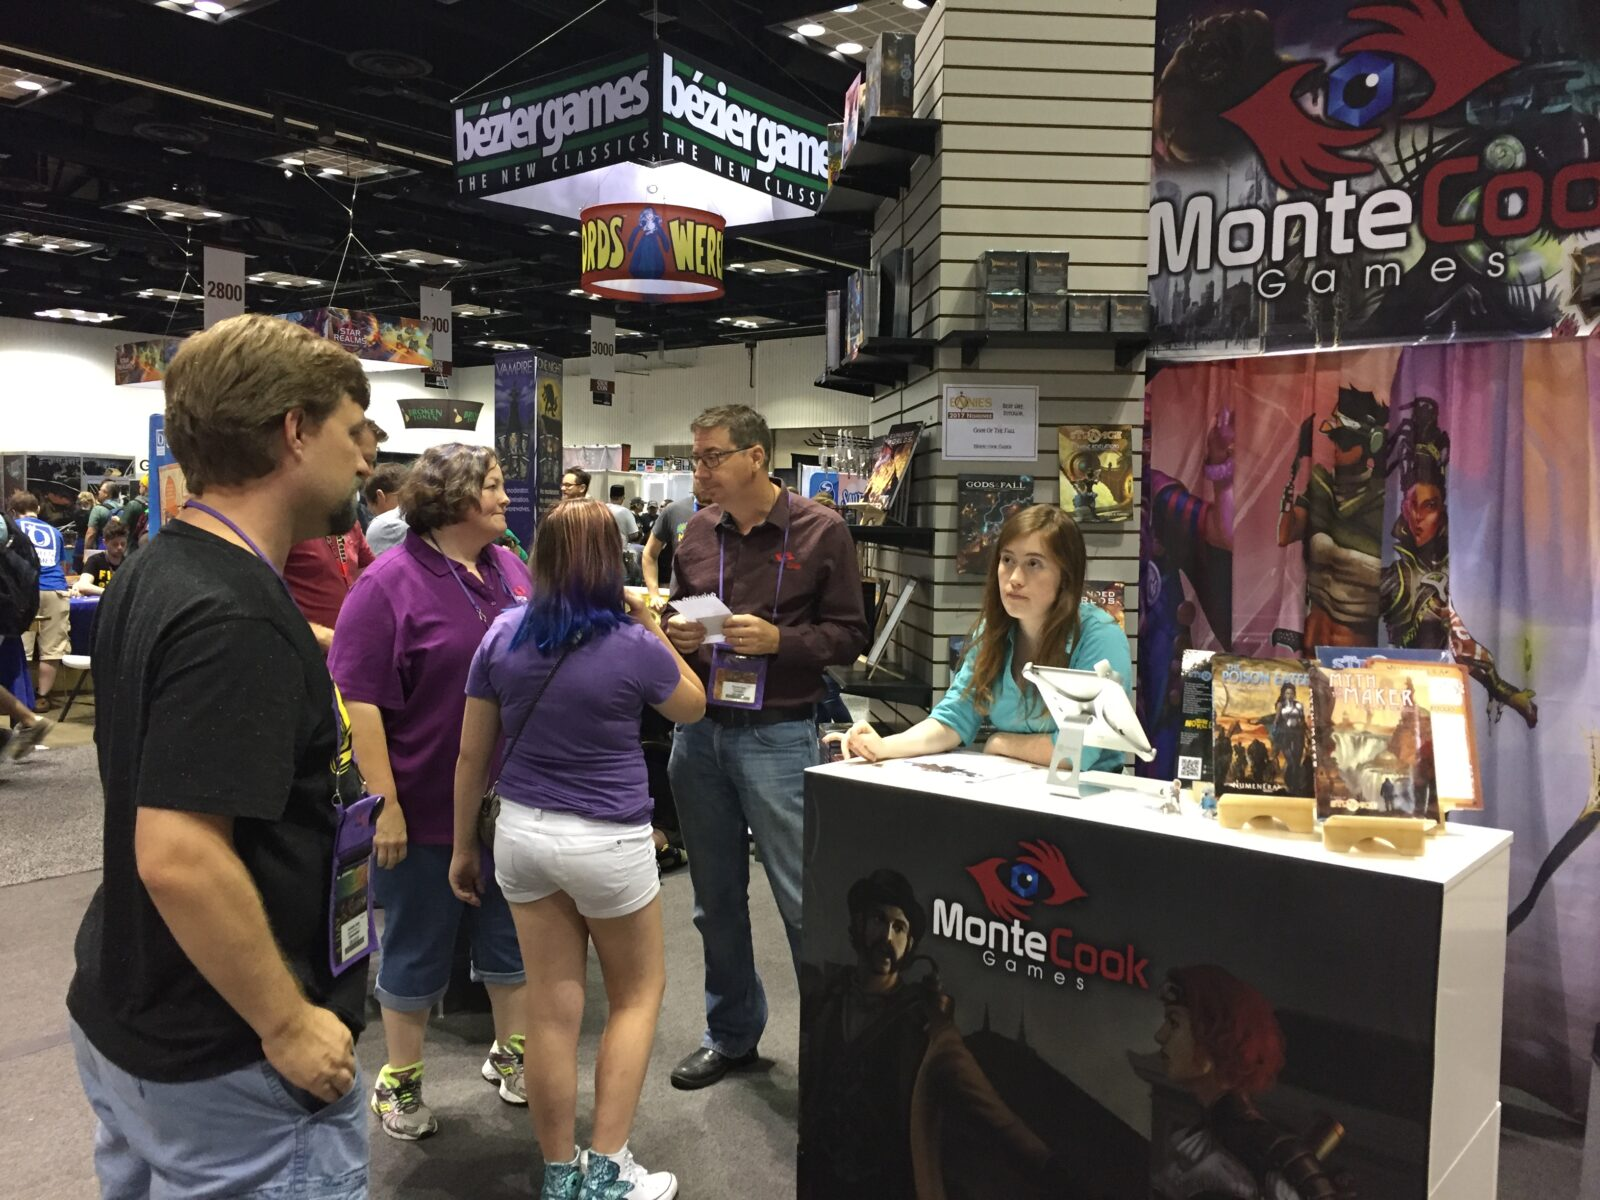 Photo from a previous Gen Con showing the MCG booth, with Andrew Cady, Zoa Smalley, Olivia Ryan, Charles Ryan, and Tammie Ryan.